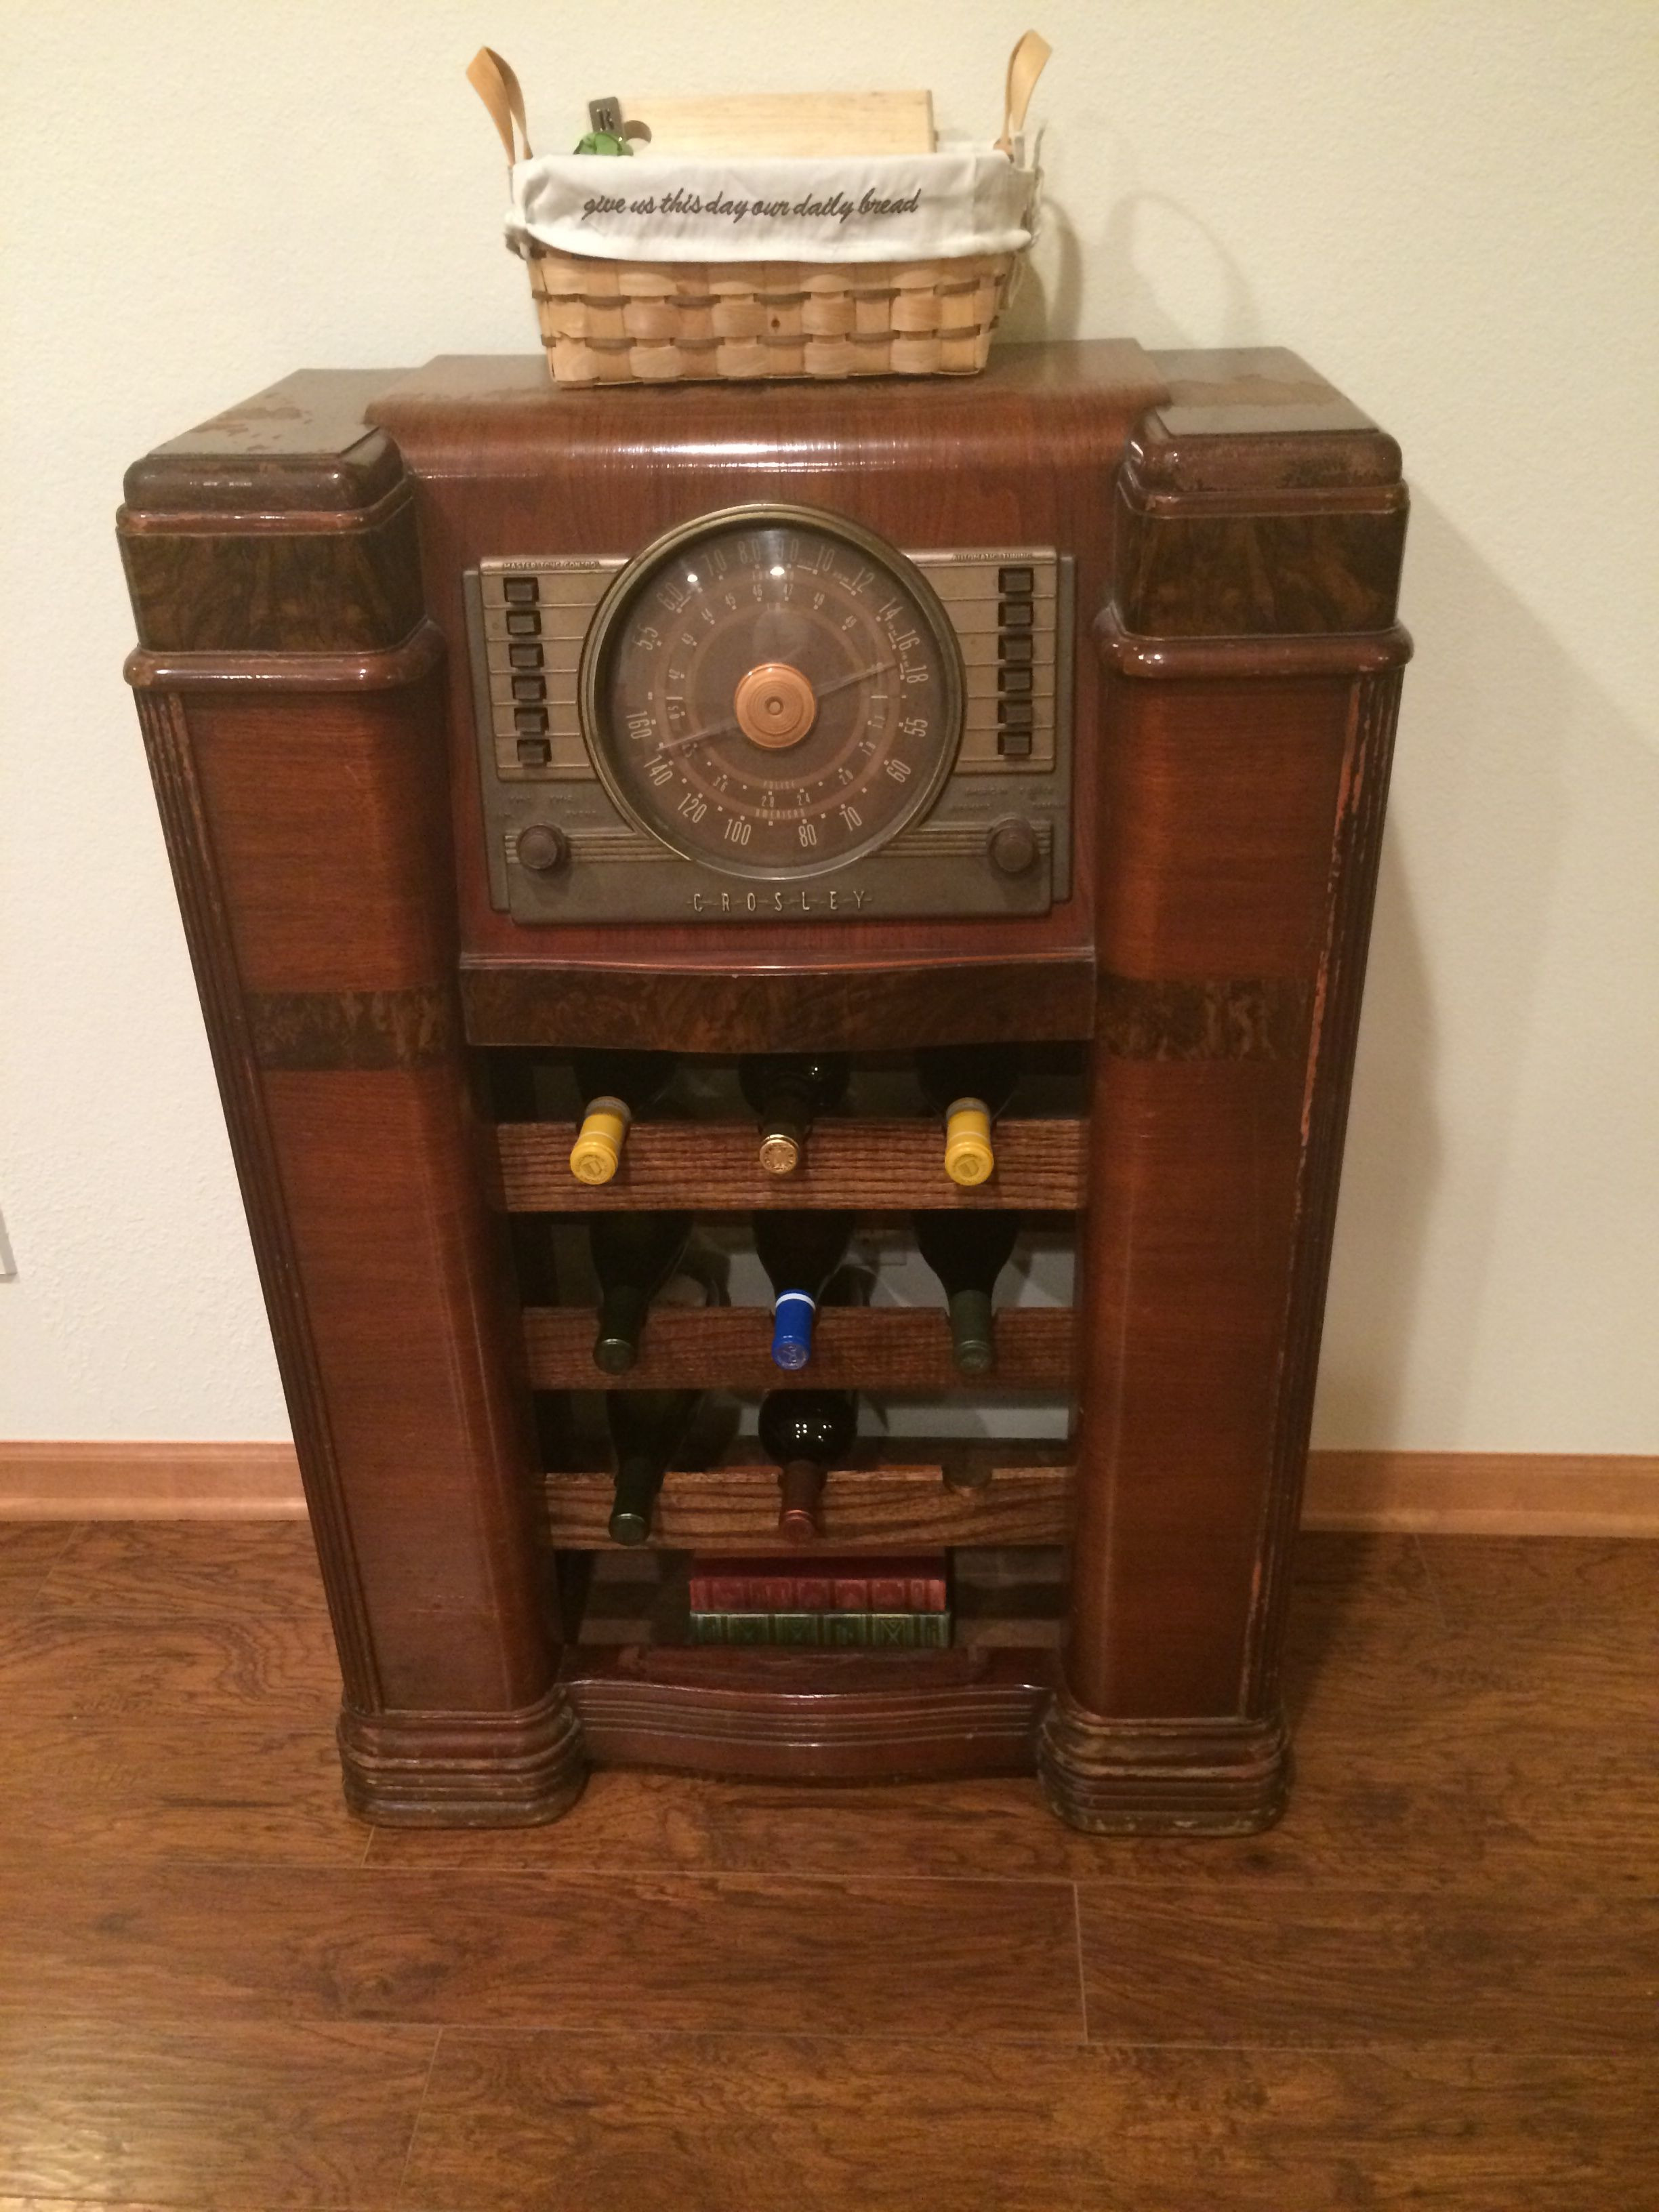 Best Glue for Antique Wood Furniture Lovely Pleted Project Antique Radio Wine Rack